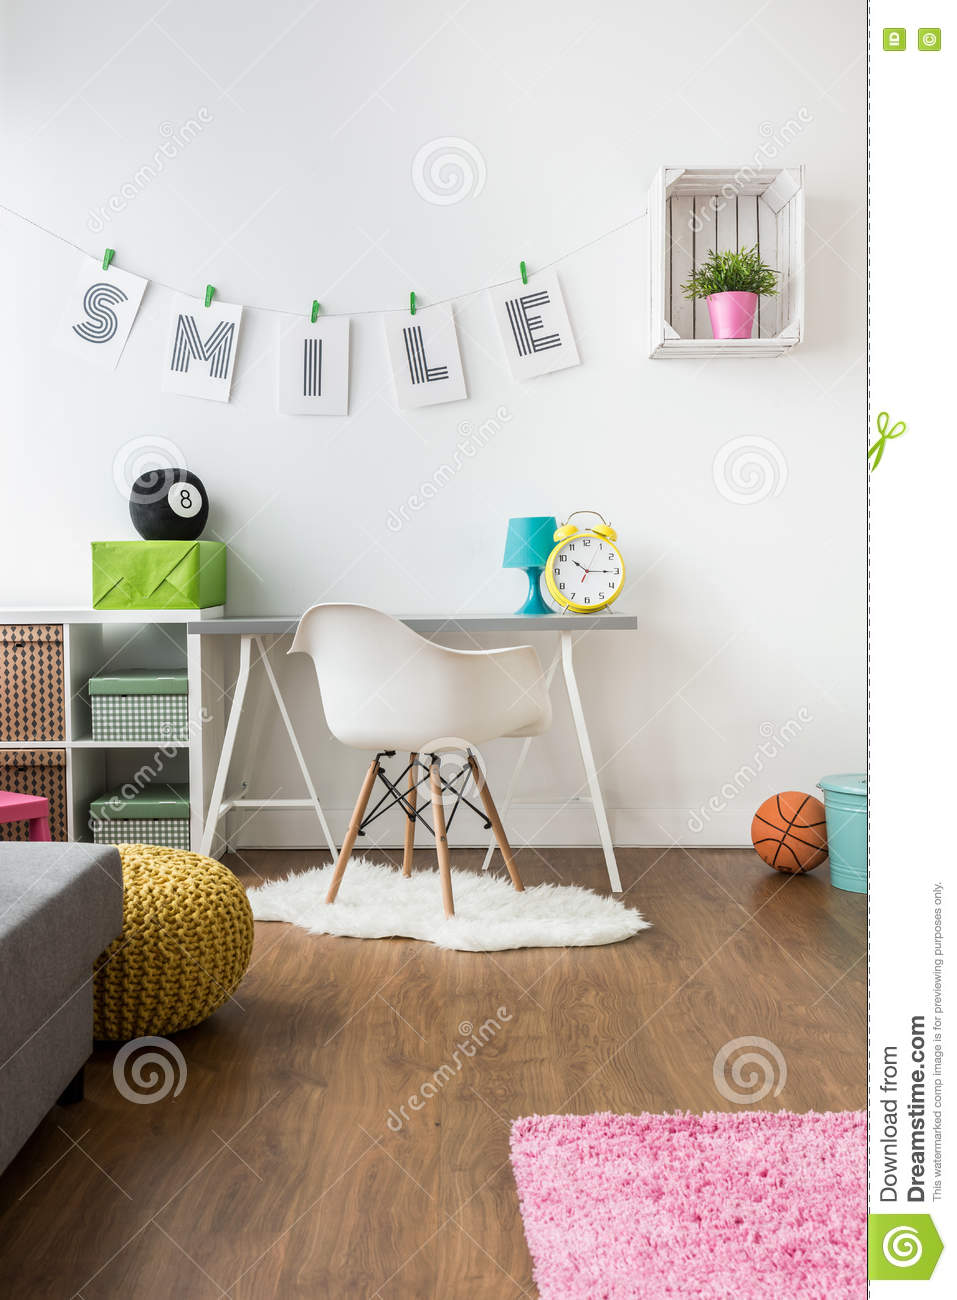 Positive Energy Kids 39 Room Design Stock Image Image Of